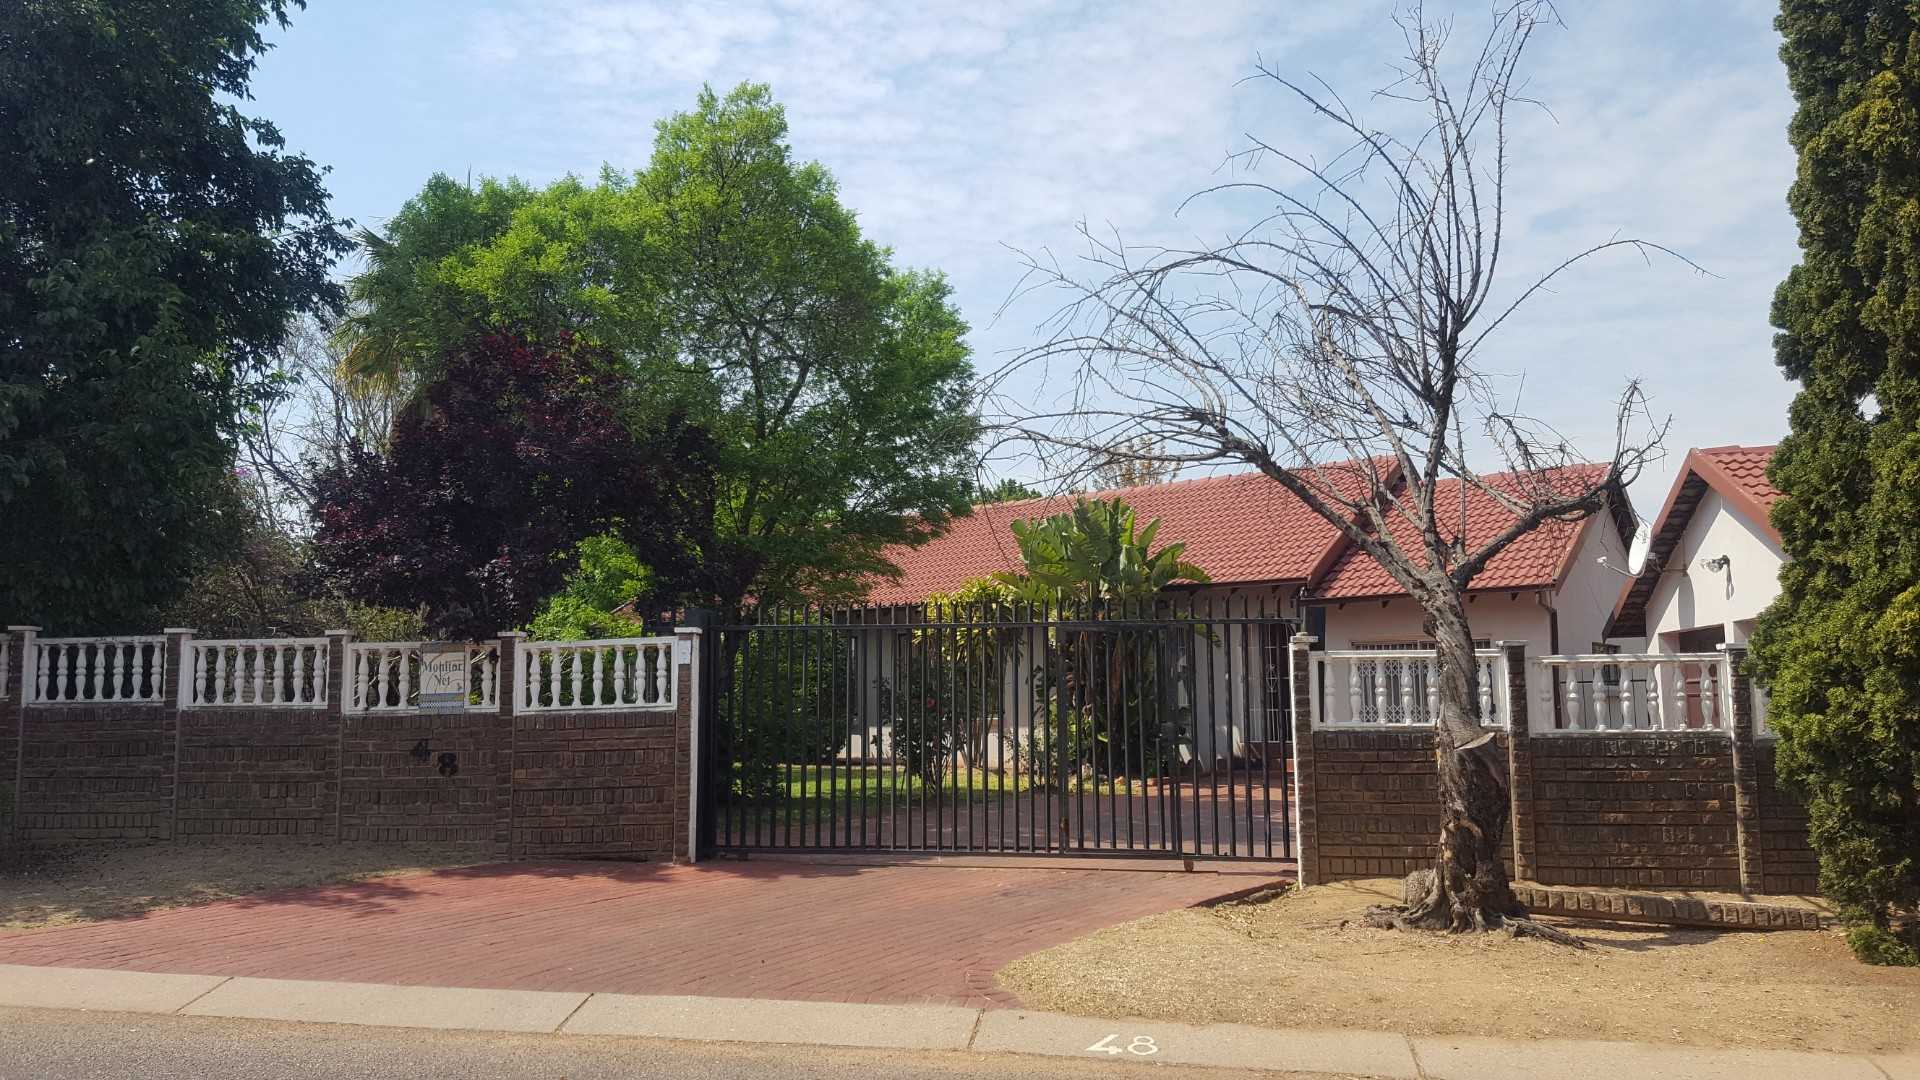 3 Bedroom house on Massive stand!